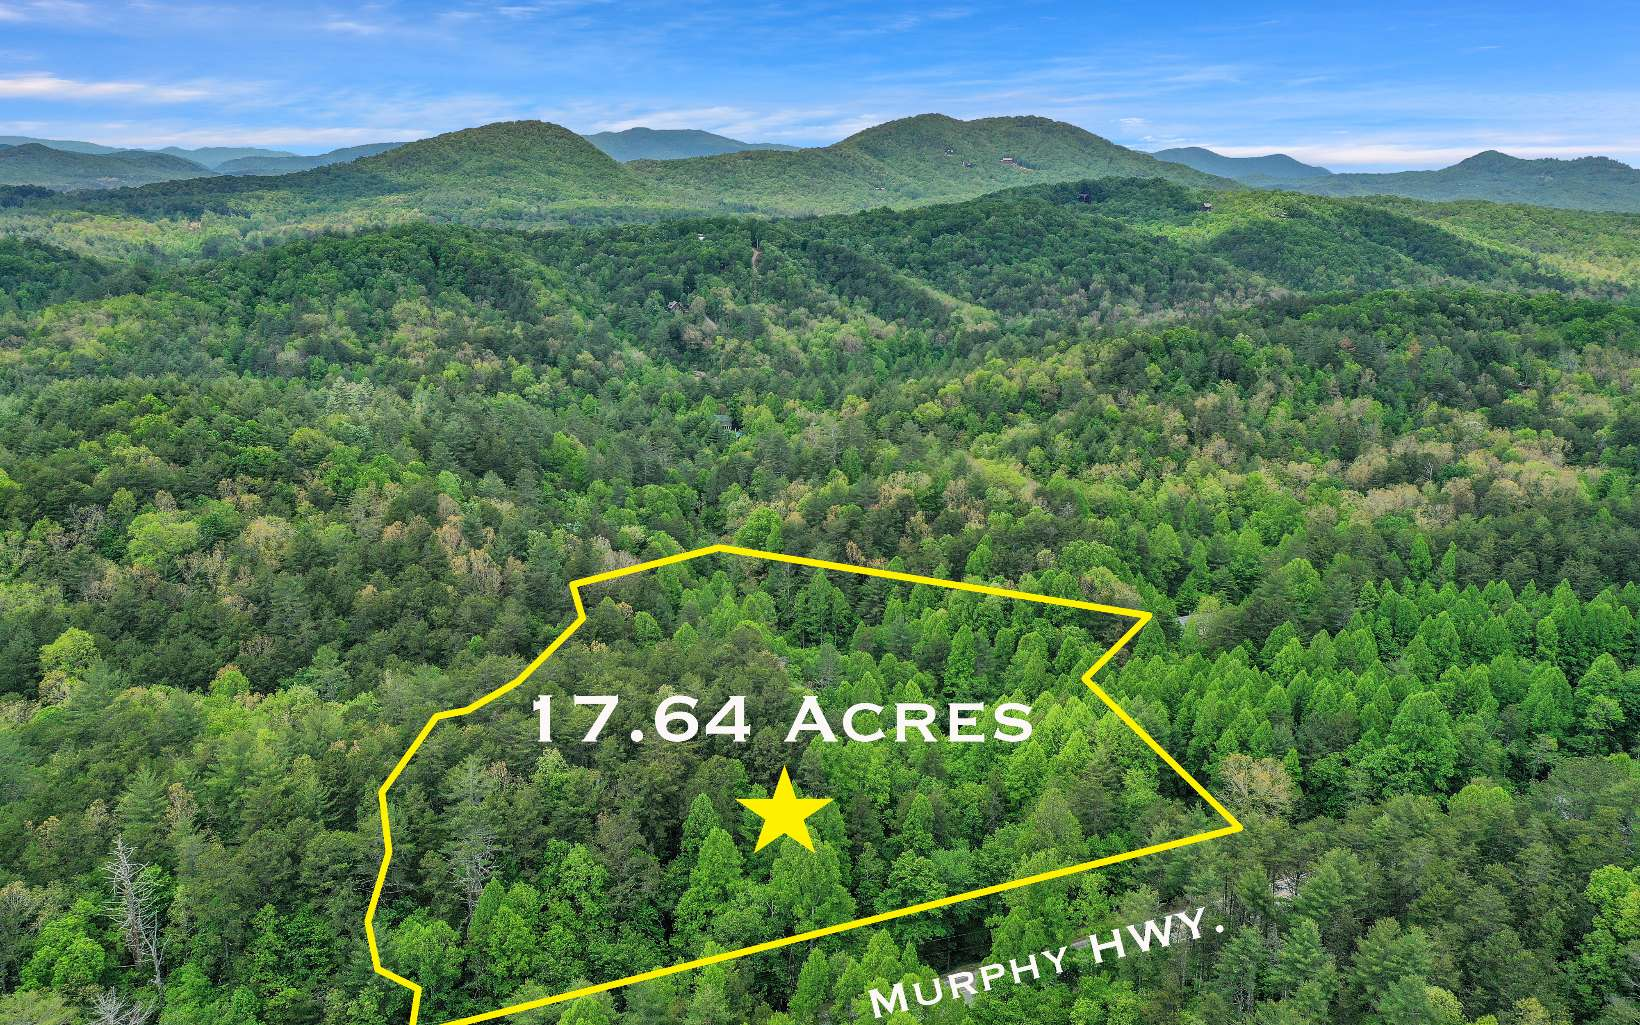 Beautiful Hardwoods on this 17.64 acres on gentle laying land fronting Murphy Highway. Looking for privatcy, easy access or maybe place a business at front of property at highway and build your retreat at the back of this property. Or subdivide for Tiny Homes or rental properties. Lots of Potential for this large tract of land. Power at property edge. Back to Blue Ridge in 10 to 15mins for dining or to Toccoa River or Lake Blue Ridge or easy access 15 mins to Murphy NC. to the Casino. (3.88 acre tract adjoins this property and can be available for sale as well)